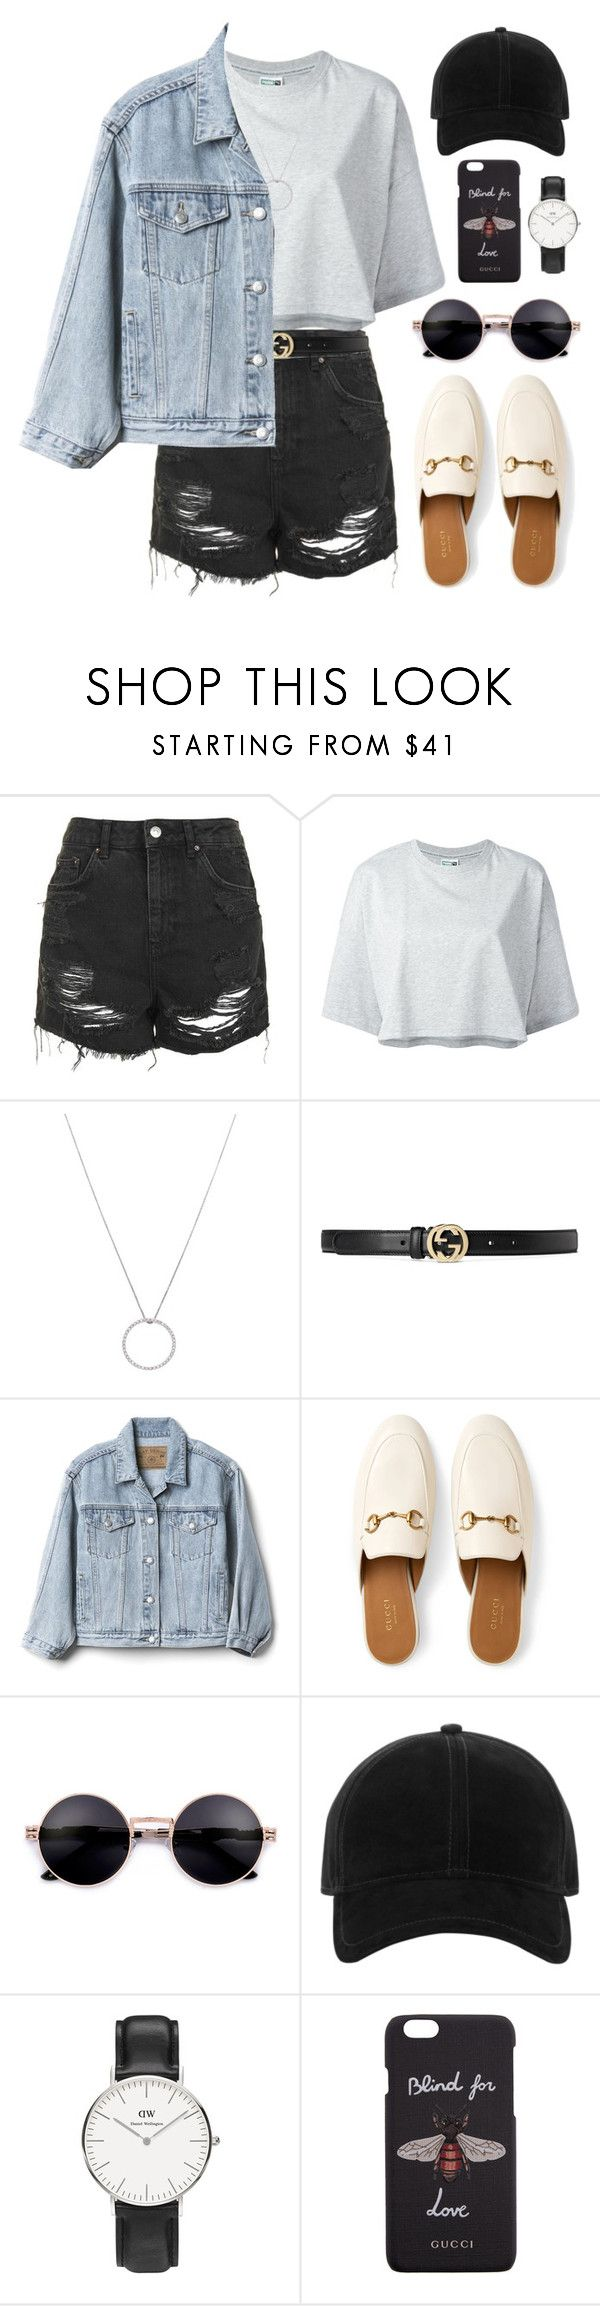 """Jeonghan X Exploring Osaka"" by jleeoutfitters ❤ liked on Polyvore featuring Topshop, Puma, Roberto Coin, Gucci, Gap, rag & bone and Daniel Wellington"